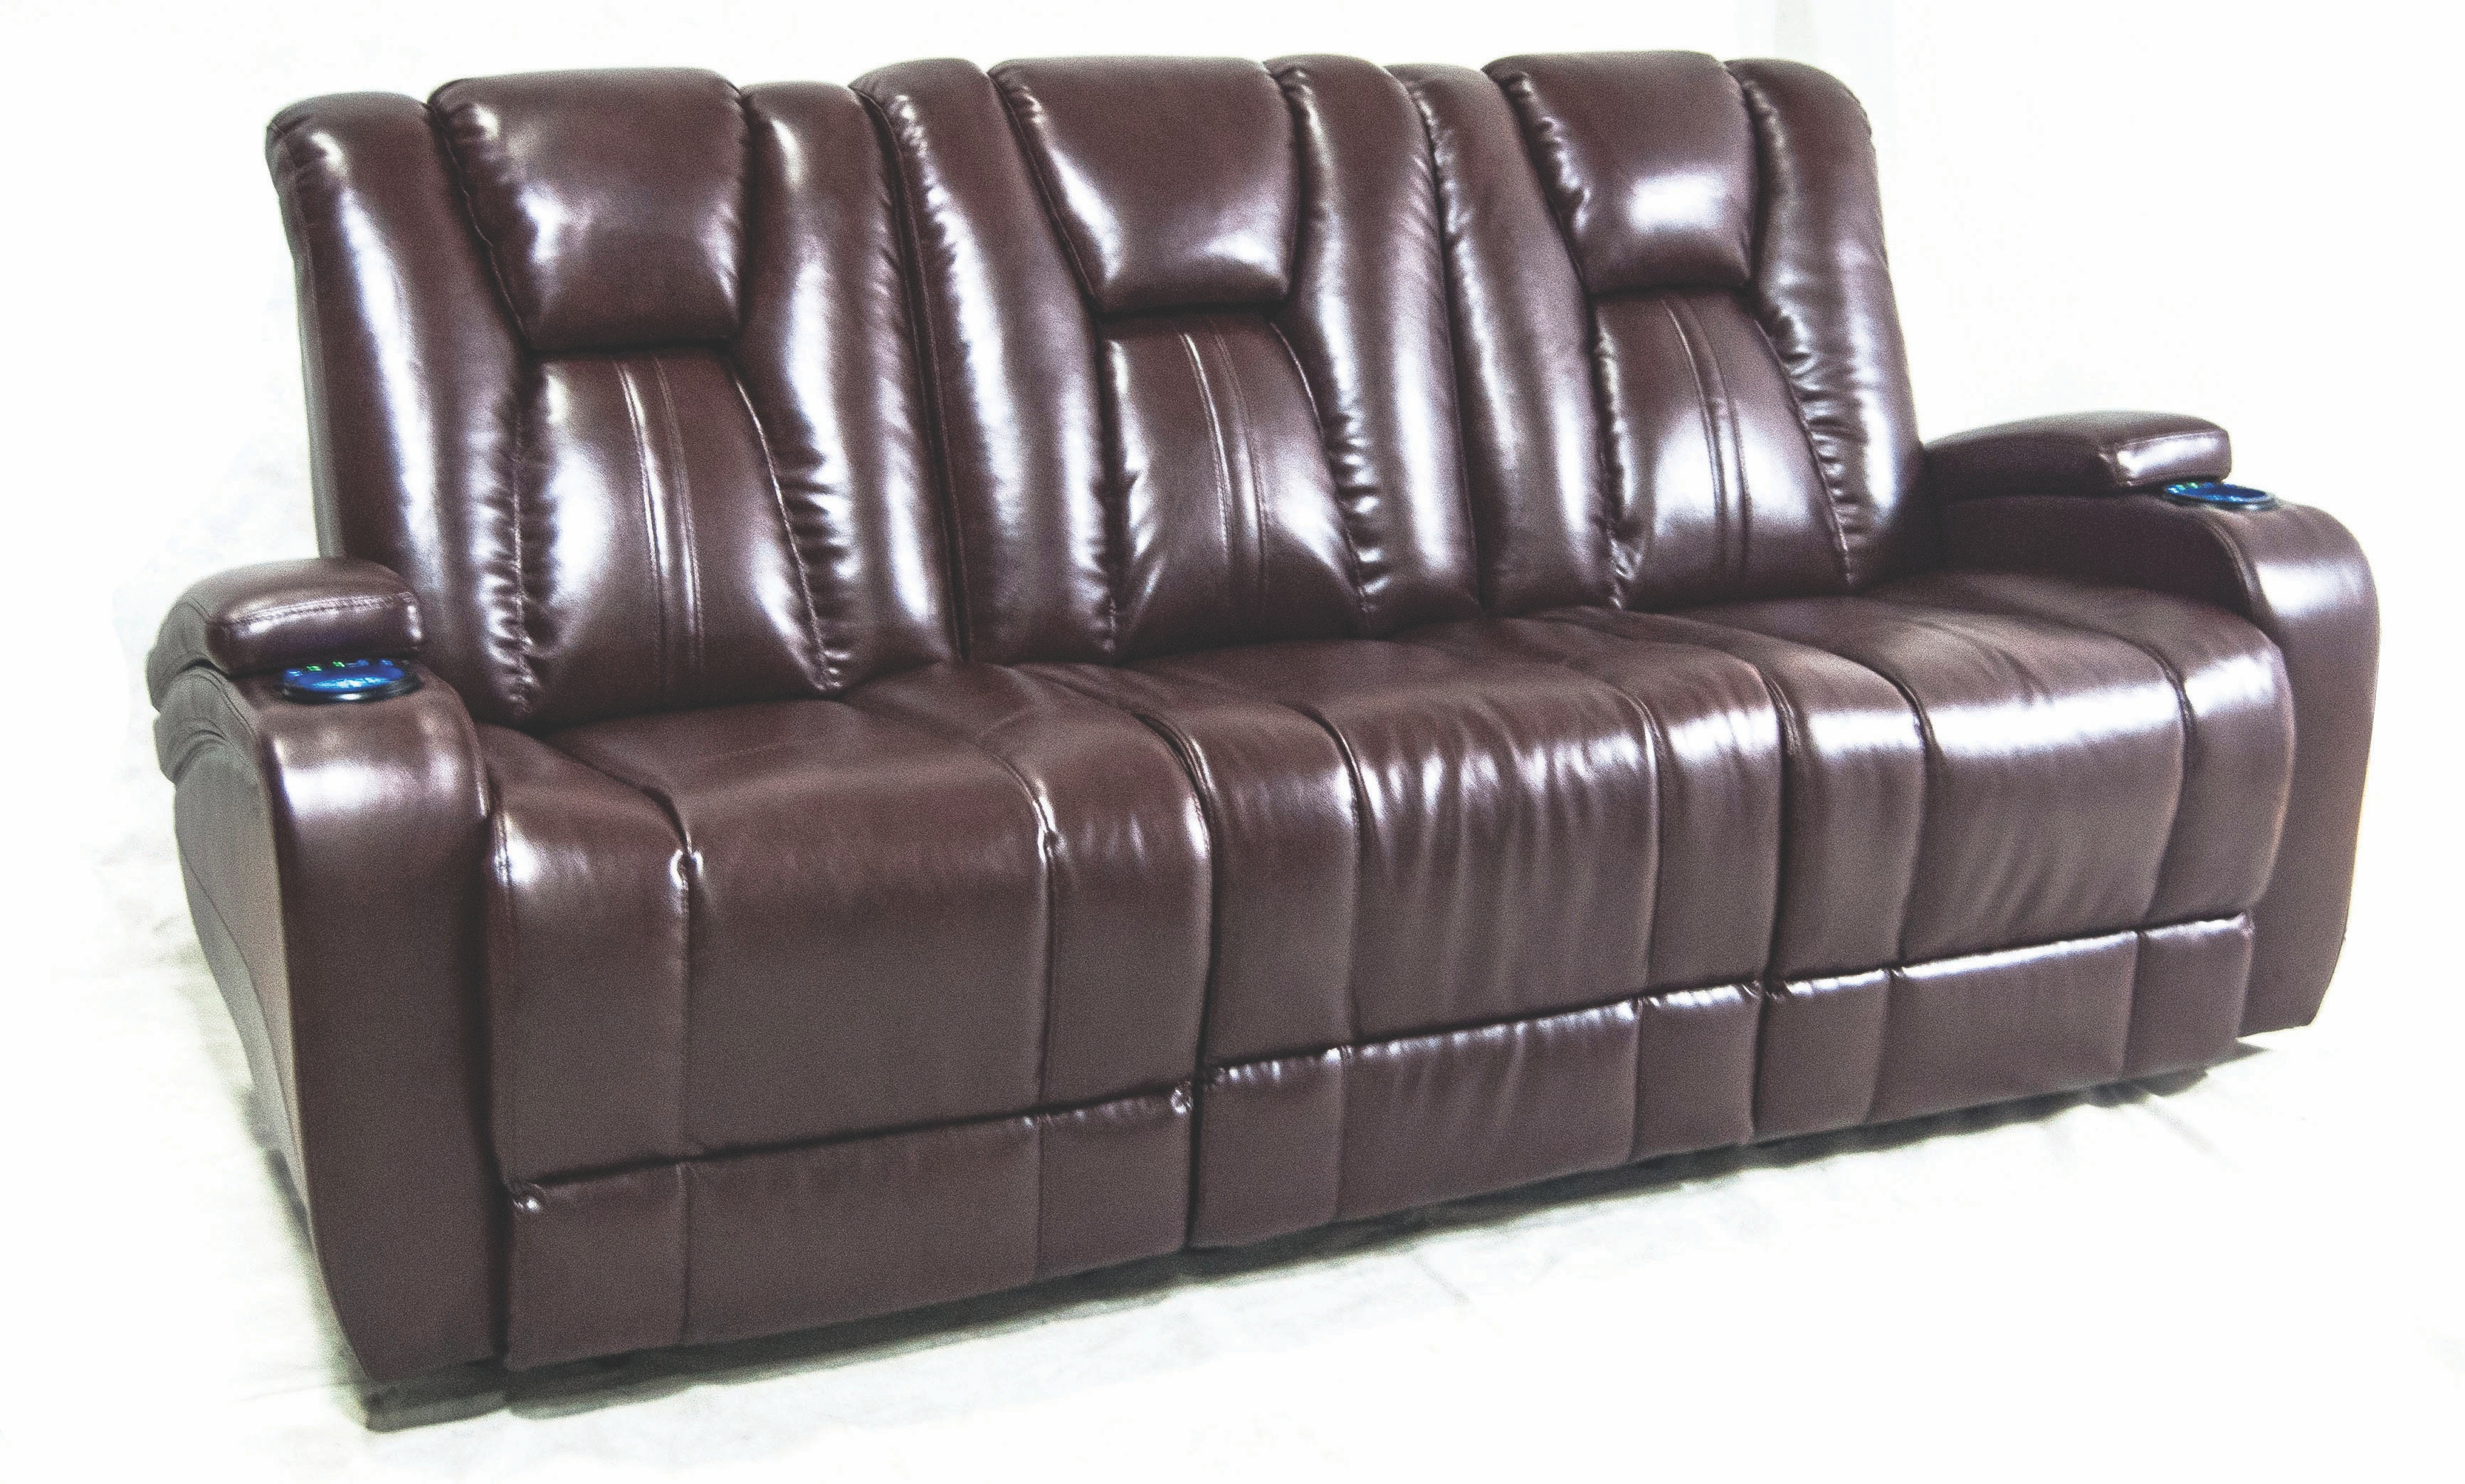 seating size valencia theater power lounges home recliner theatre full sectional loveseat eastporters recliners australia couch leather